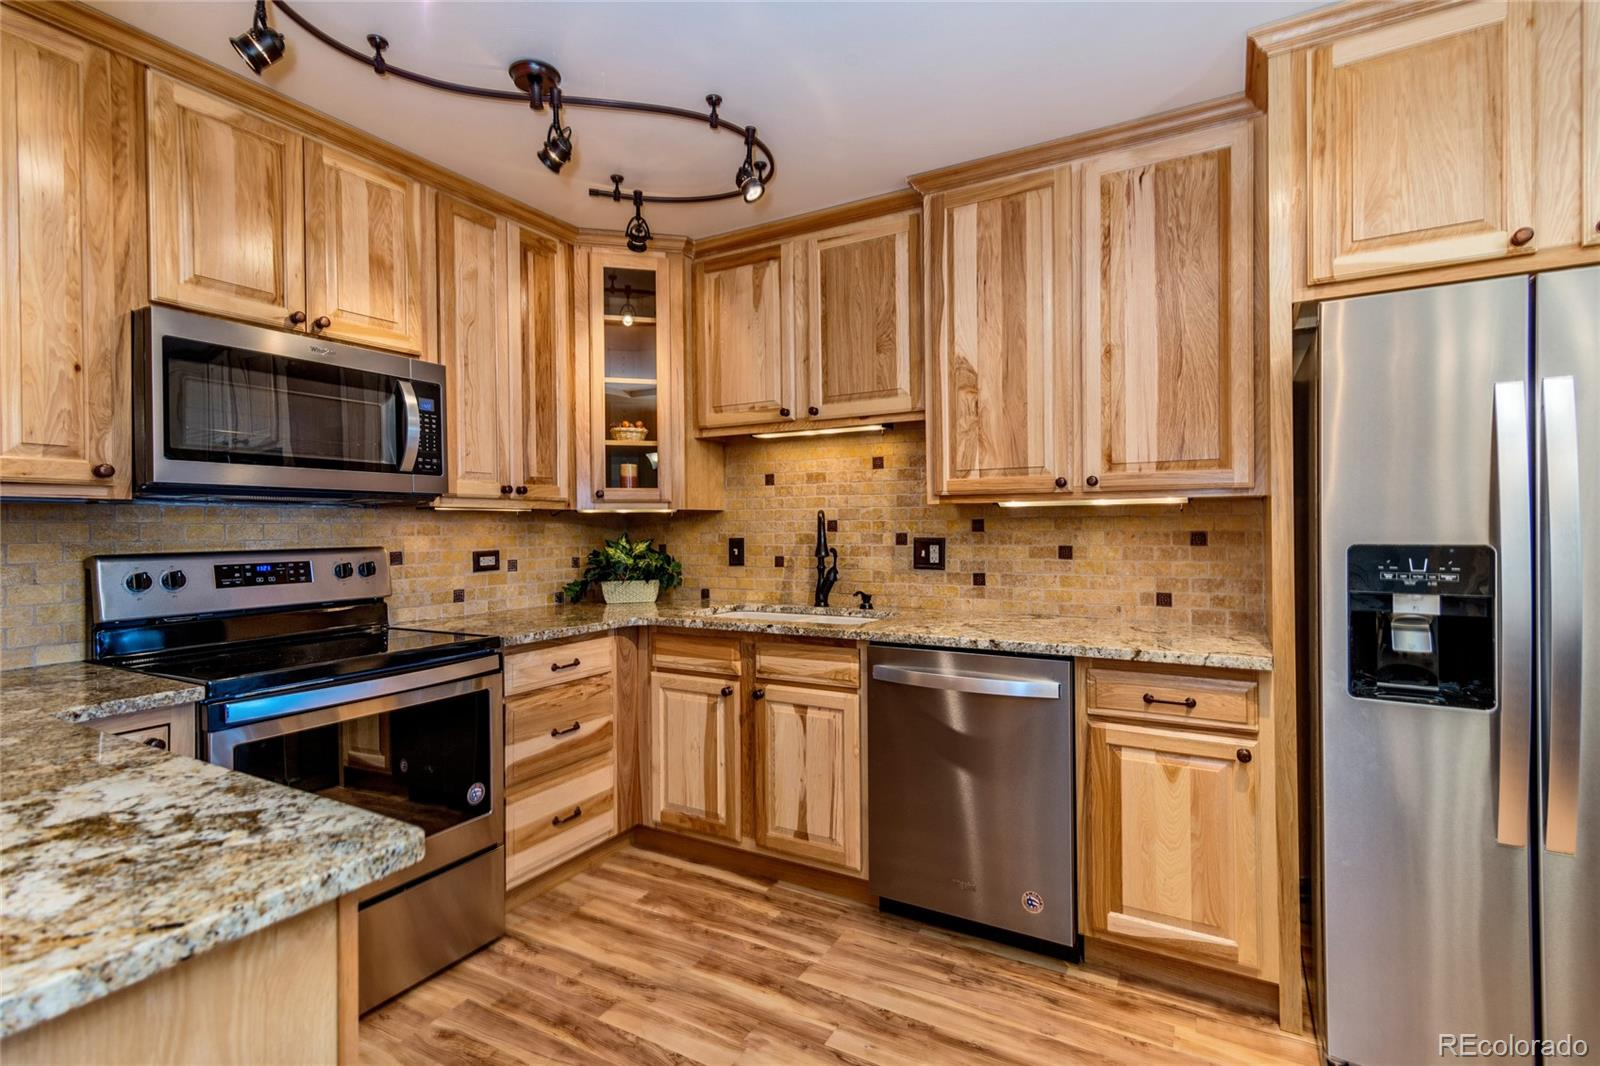 725 S Alton Way #5C Property Photo - Denver, CO real estate listing